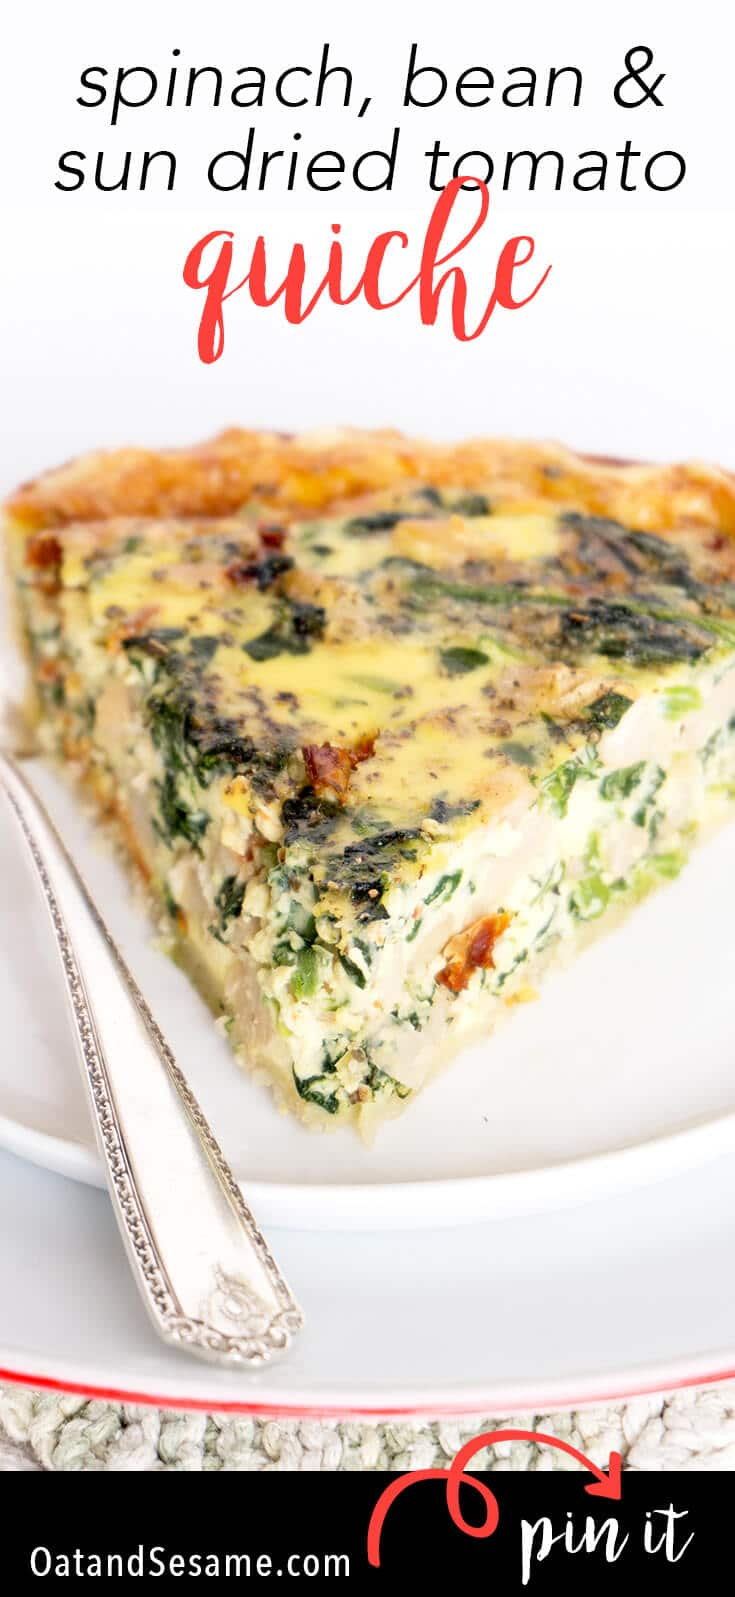 Need a BREAKFAST QUICHE? This favorite breakfast/brunch quiche is stuffed with spinach, beans, sun dried tomatoes and fontina cheese! | Recipe at OatandSesame.com